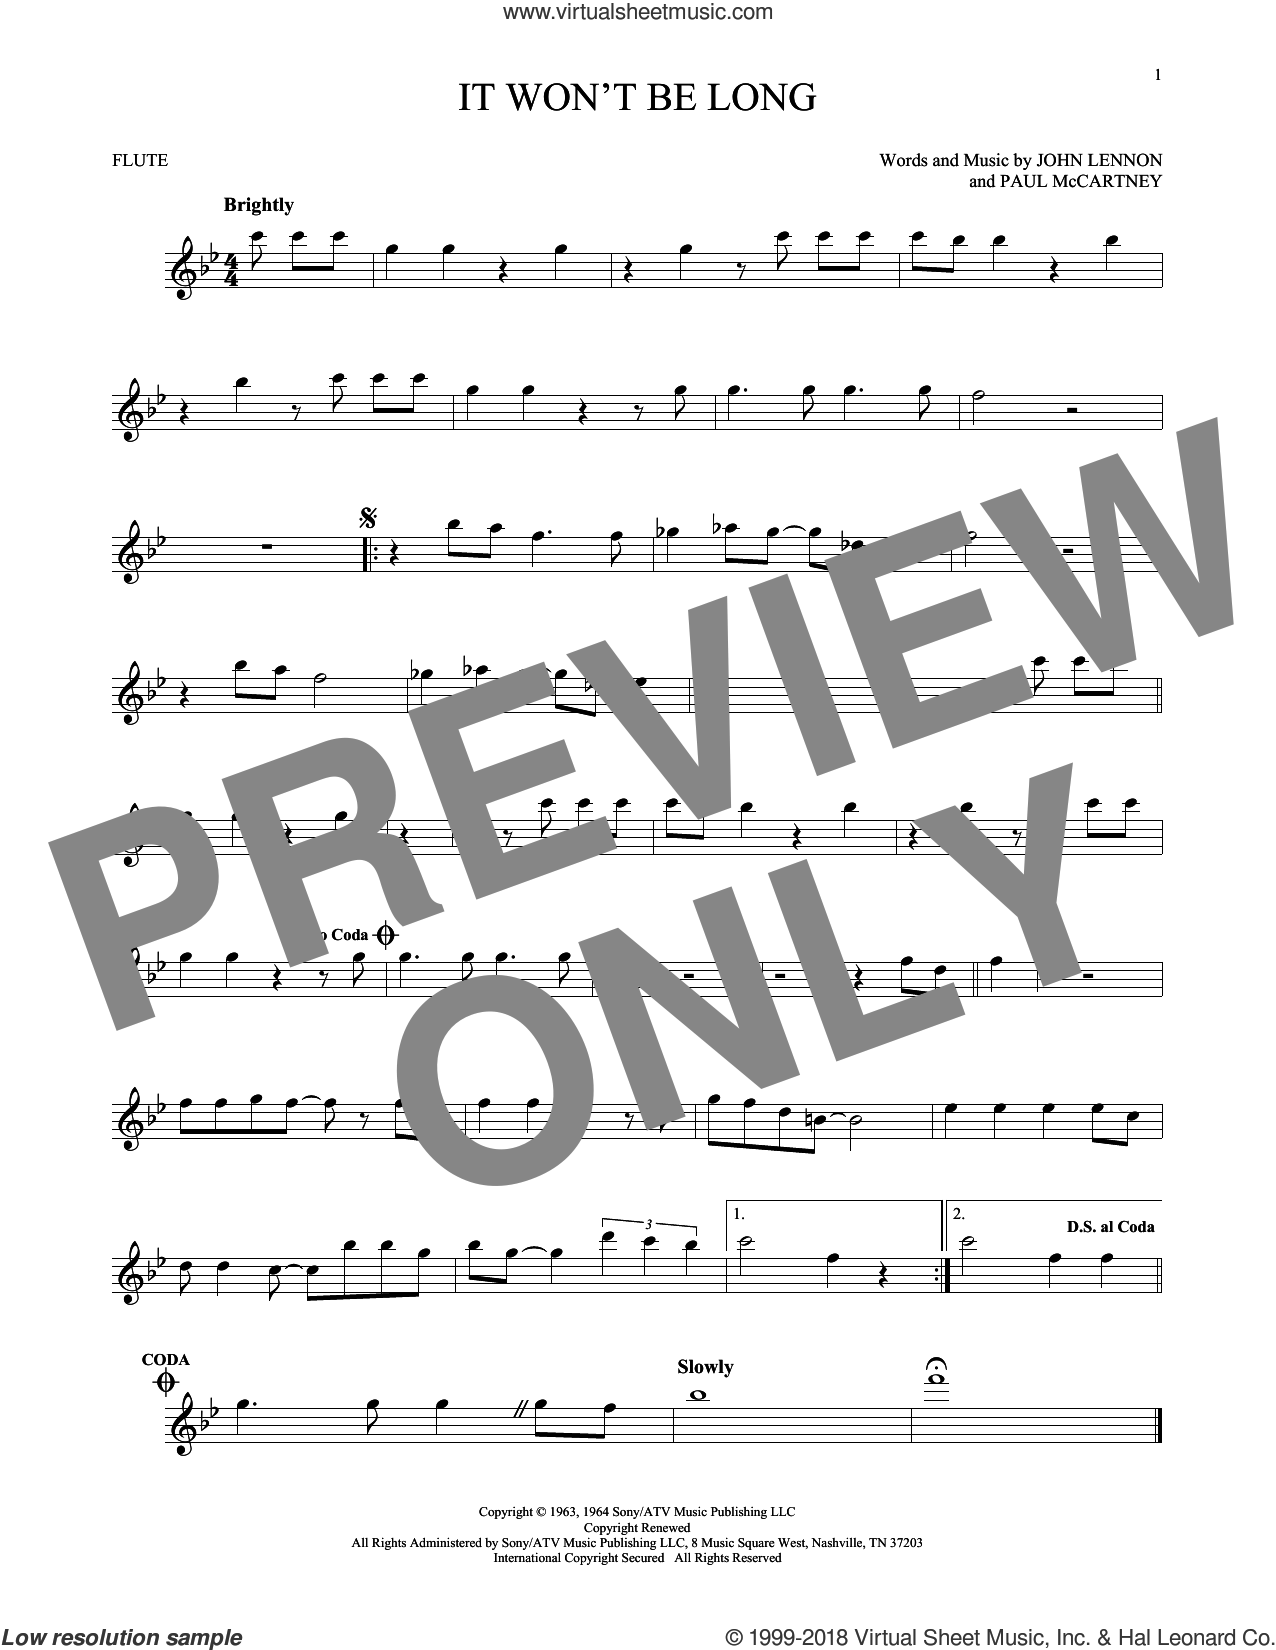 It Won't Be Long sheet music for flute solo by The Beatles, John Lennon and Paul McCartney, intermediate flute. Score Image Preview.